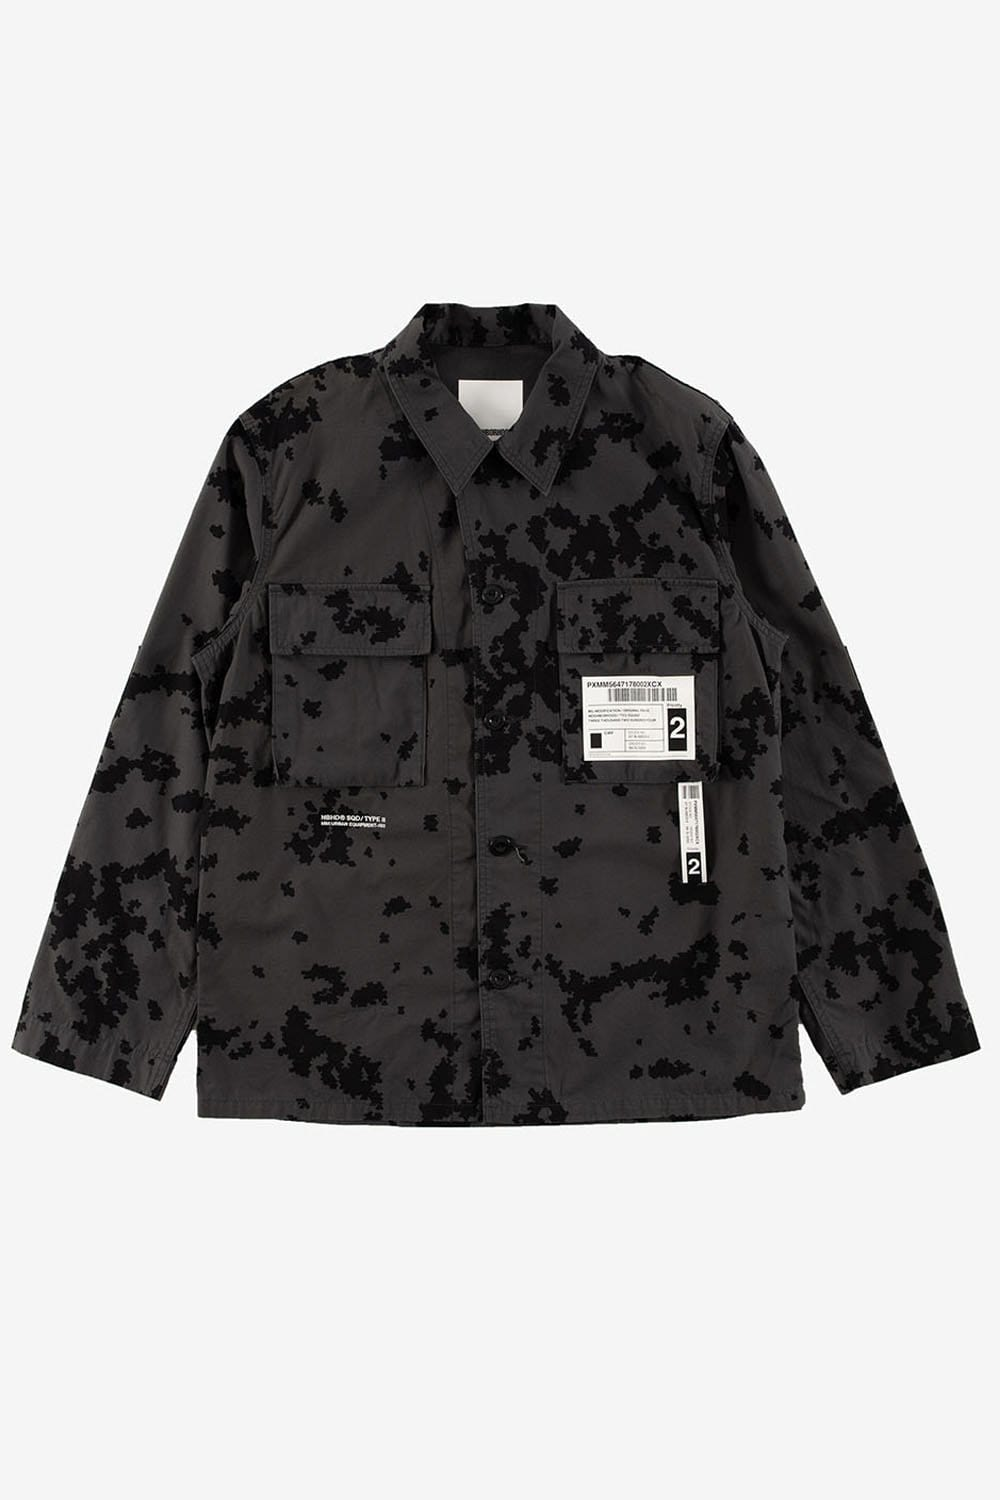 Neighborhood Apparel BDU Long Sleeve Shirt